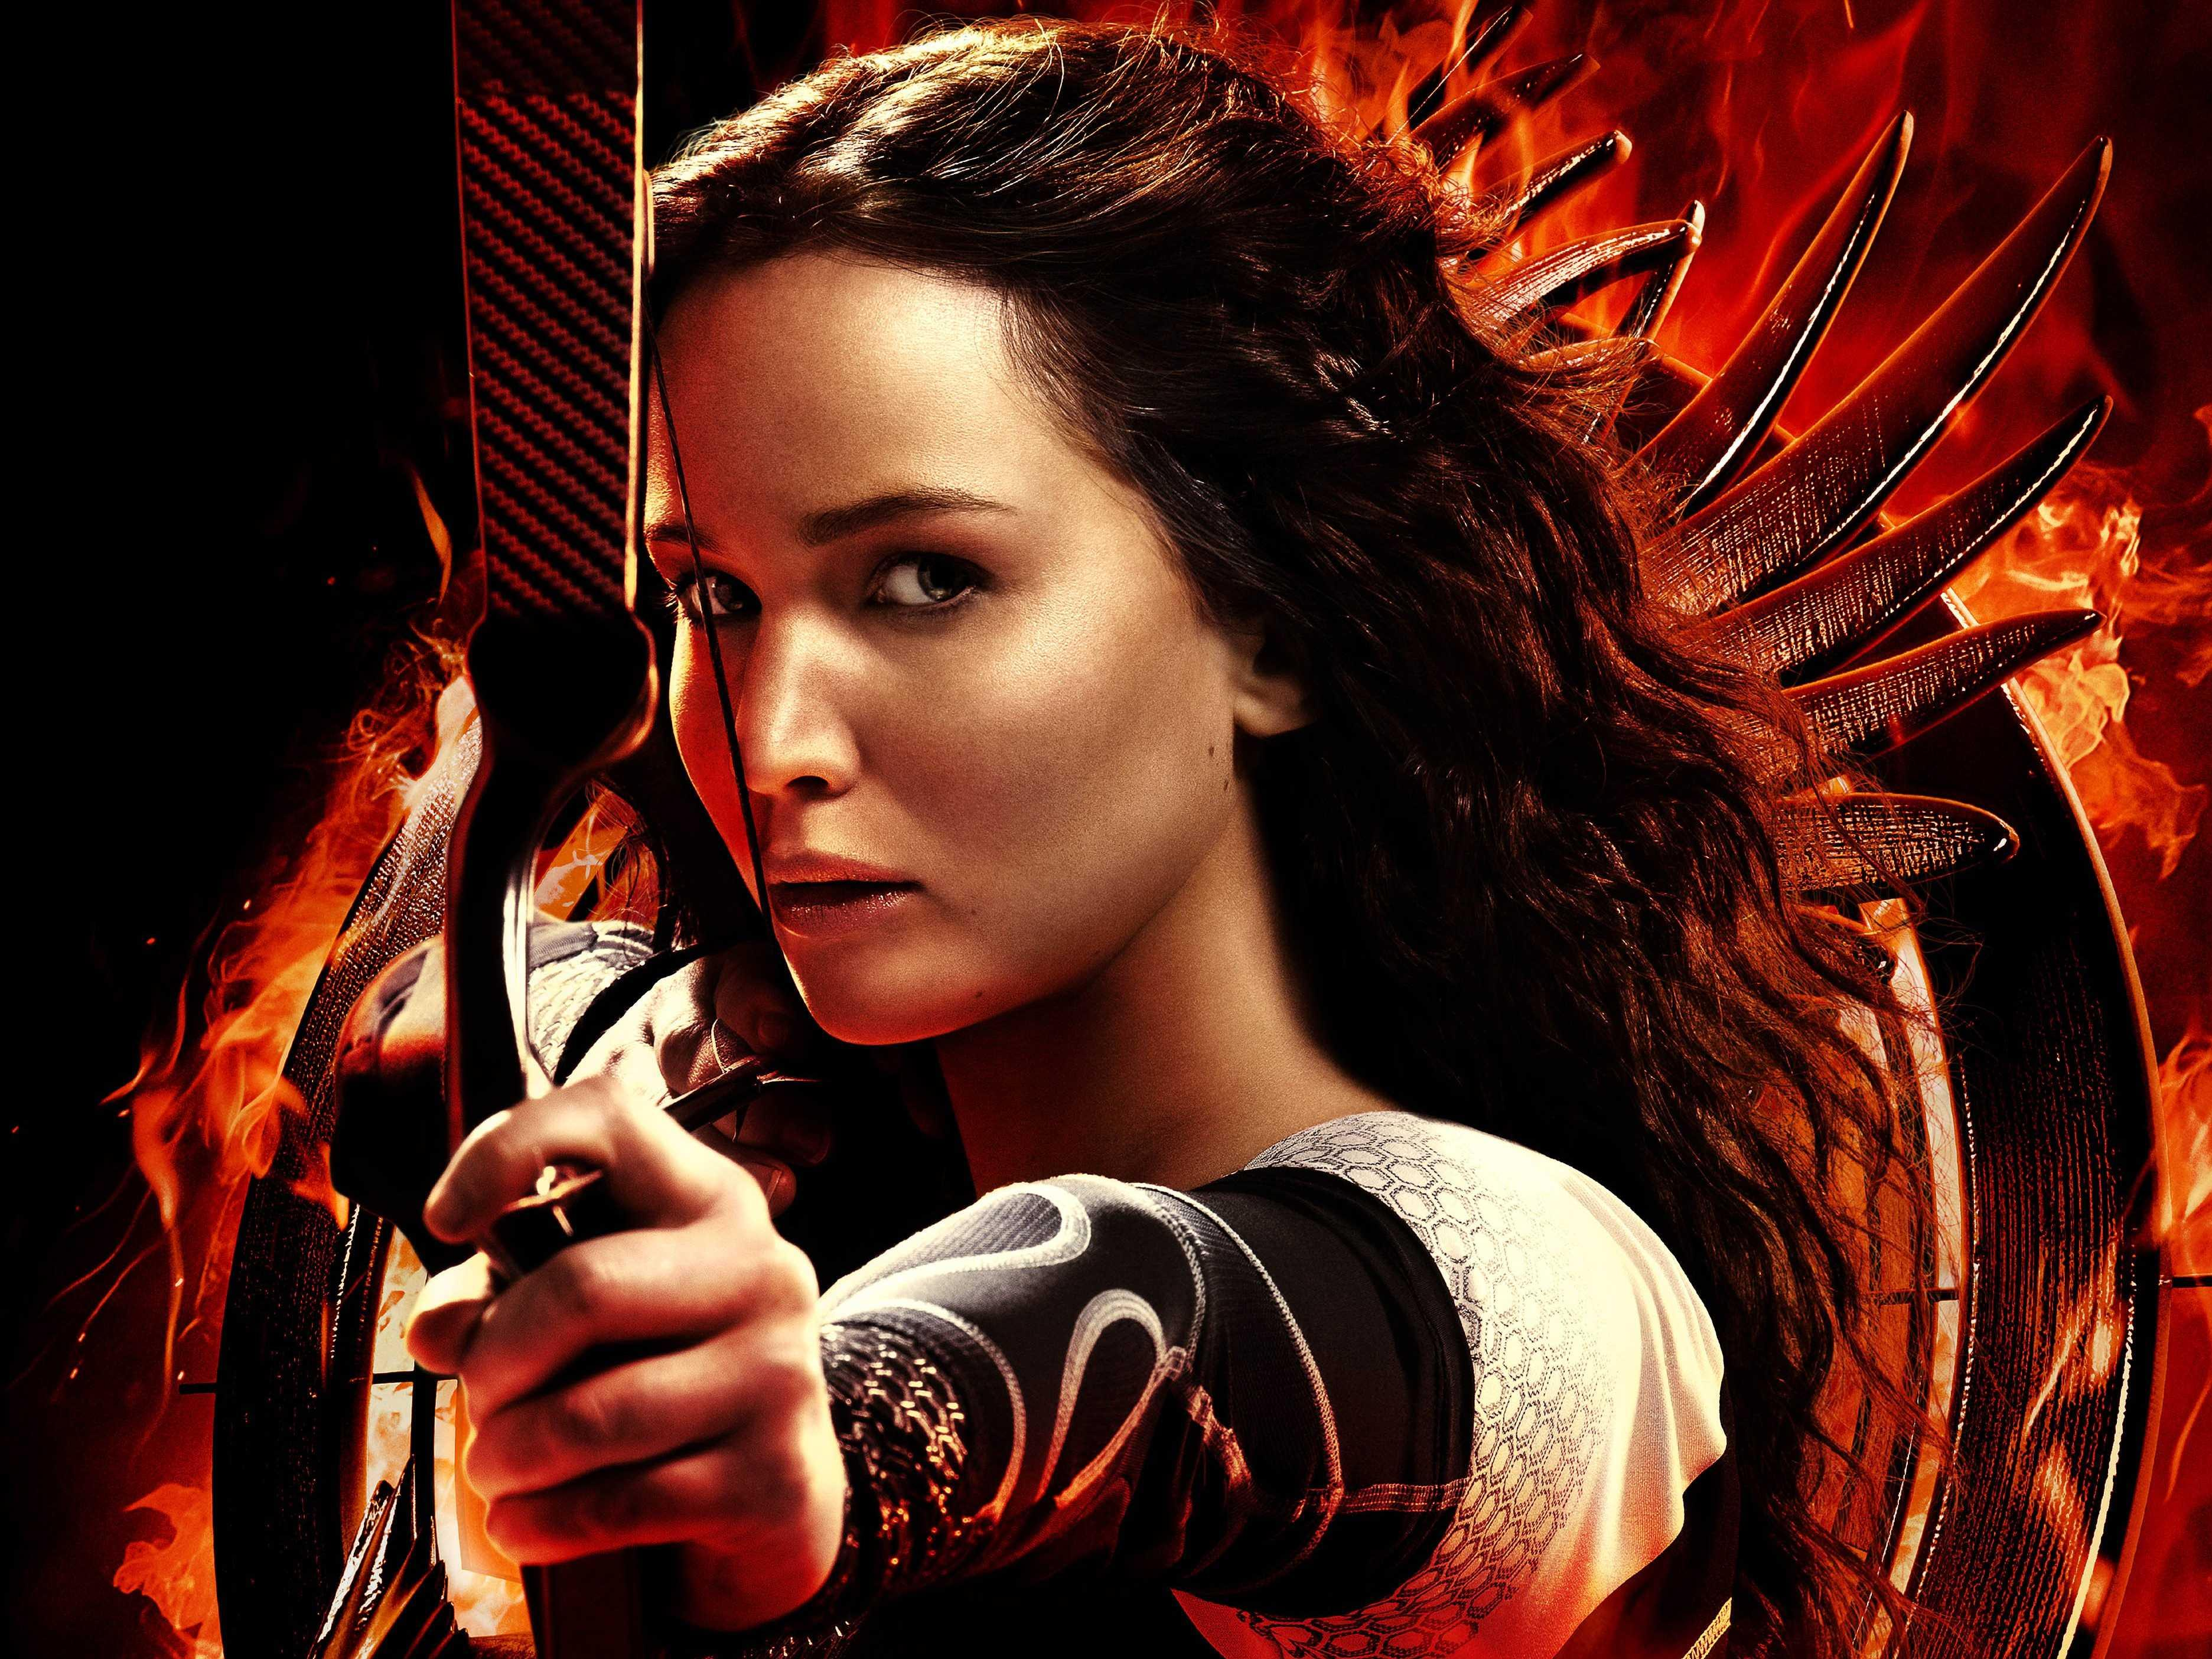 Final 'Hunger Games' movie opens to franchise low